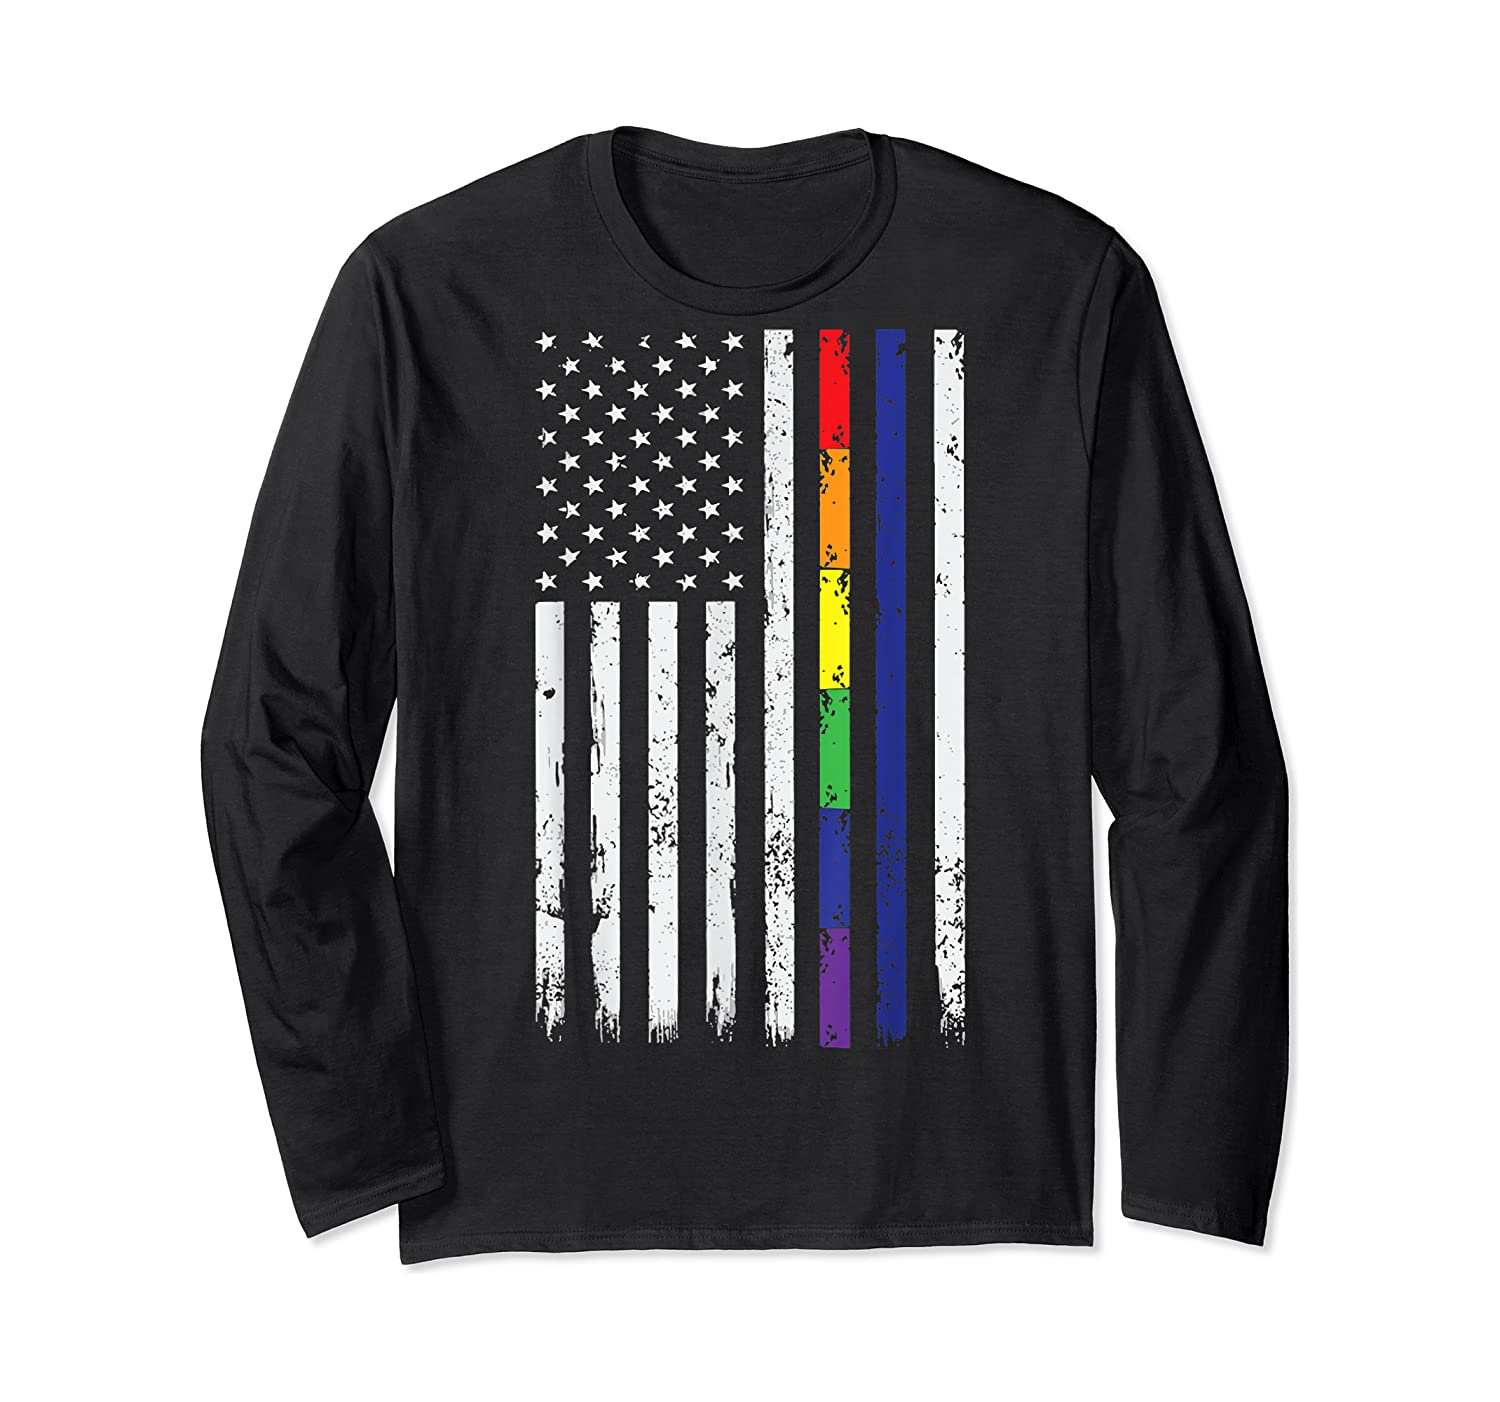 Police Support Lgbt Gay Pride Thin Red Line Rainbow Flag Fun T-shirt Long Sleeve T-shirt